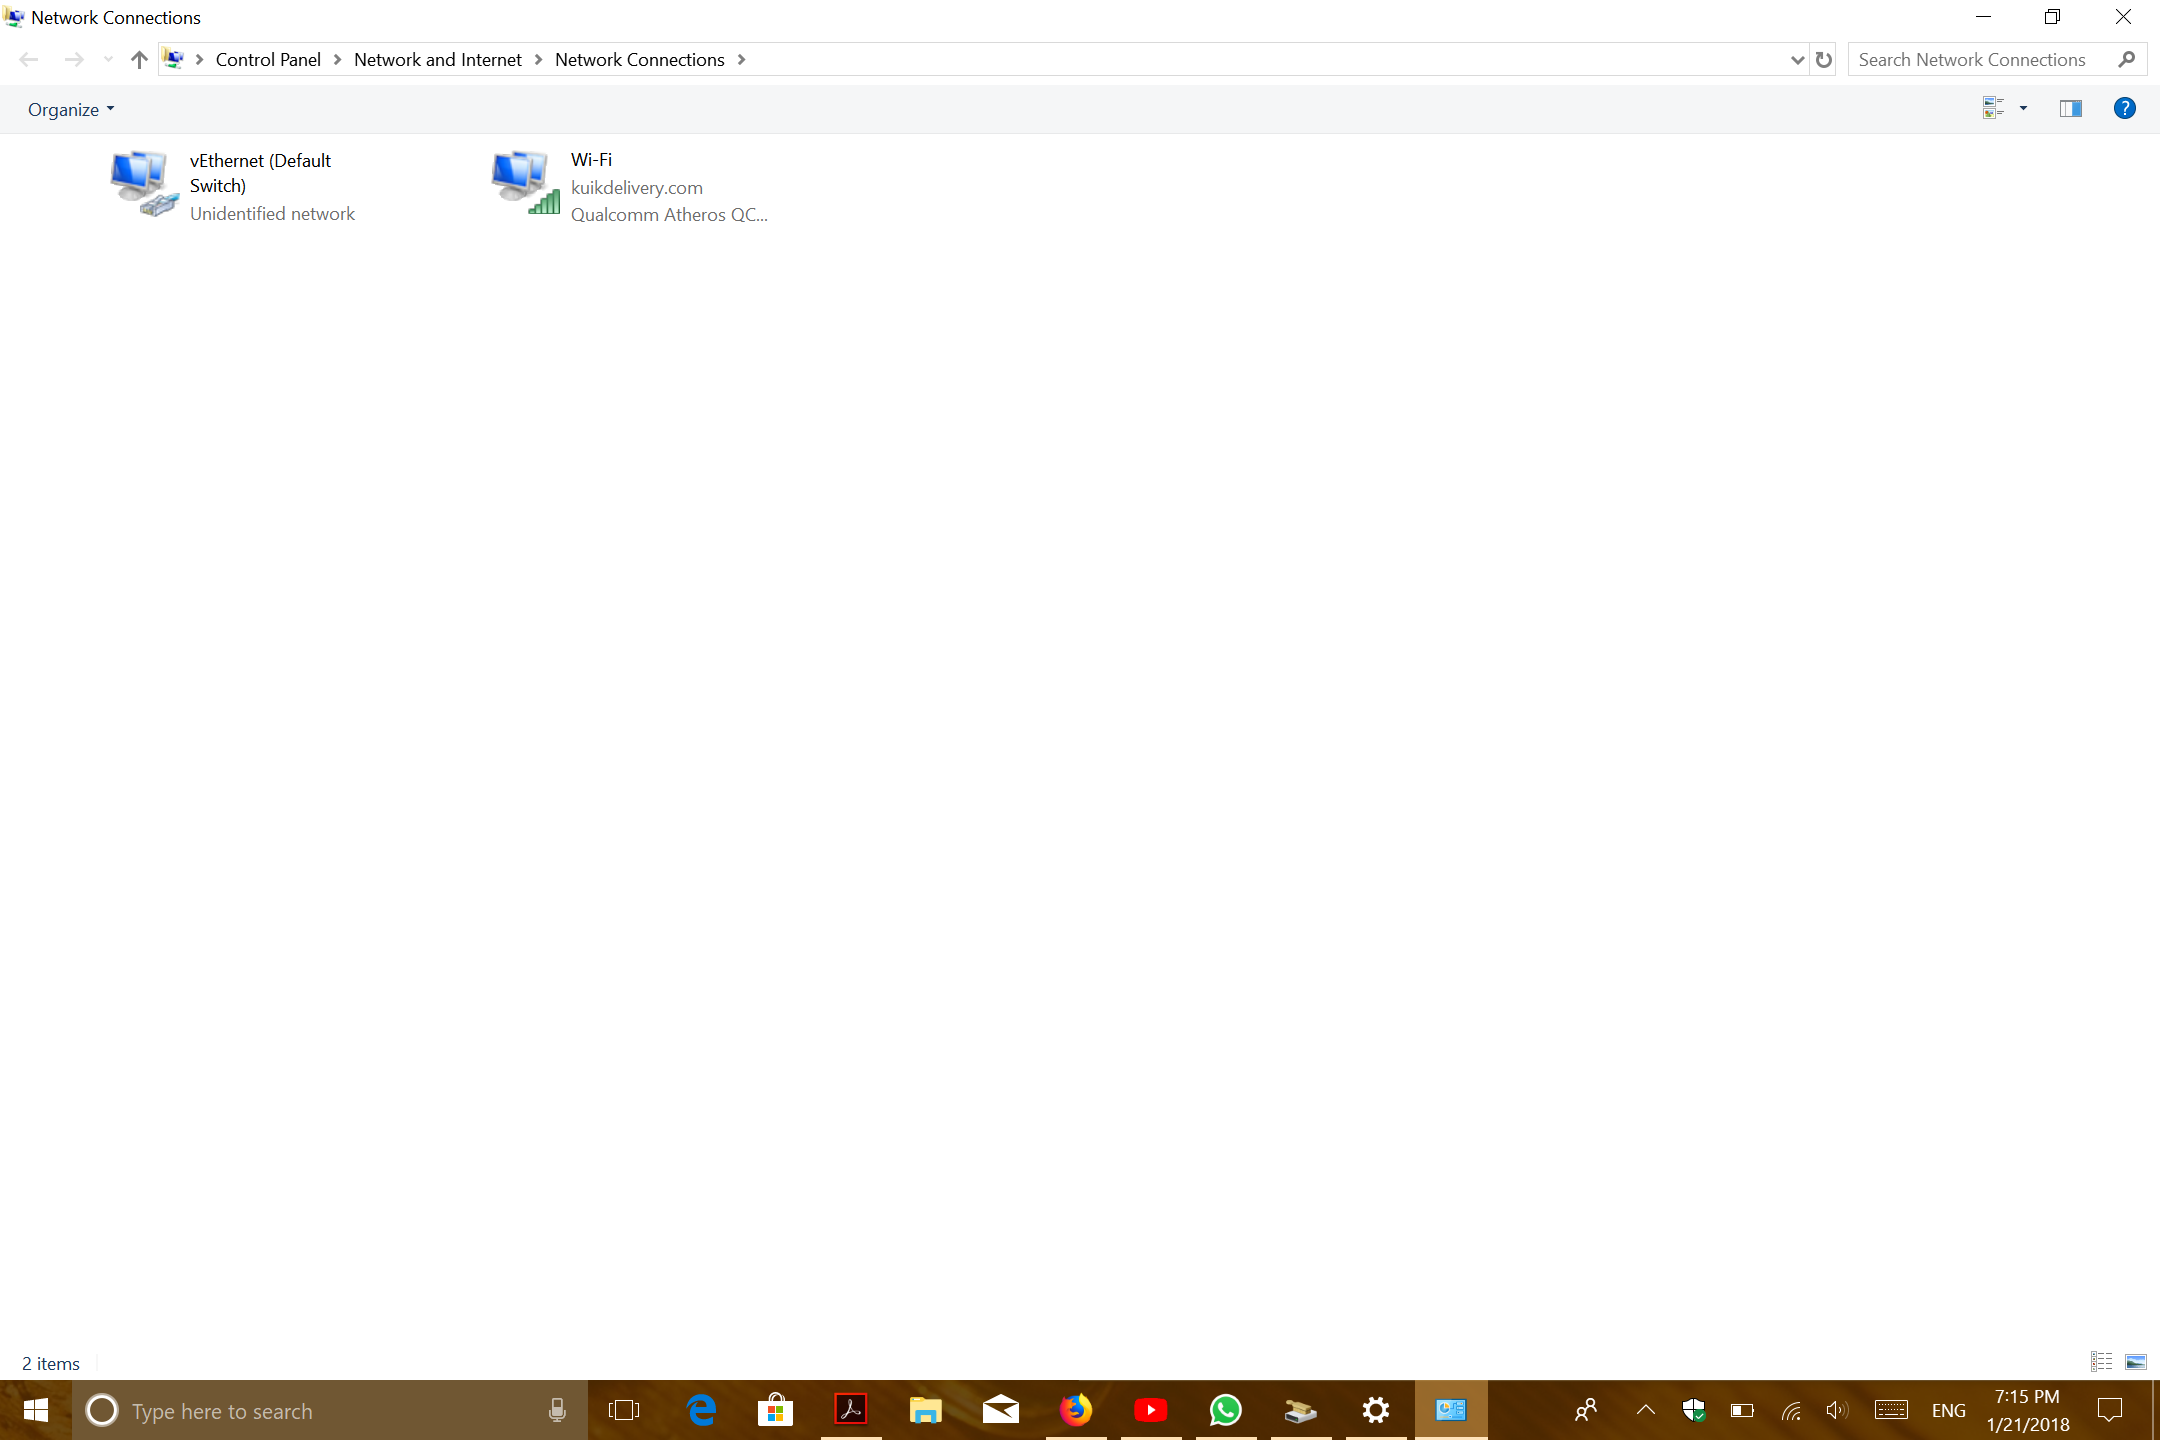 kuikdelivery in my wifi network - Microsoft Community